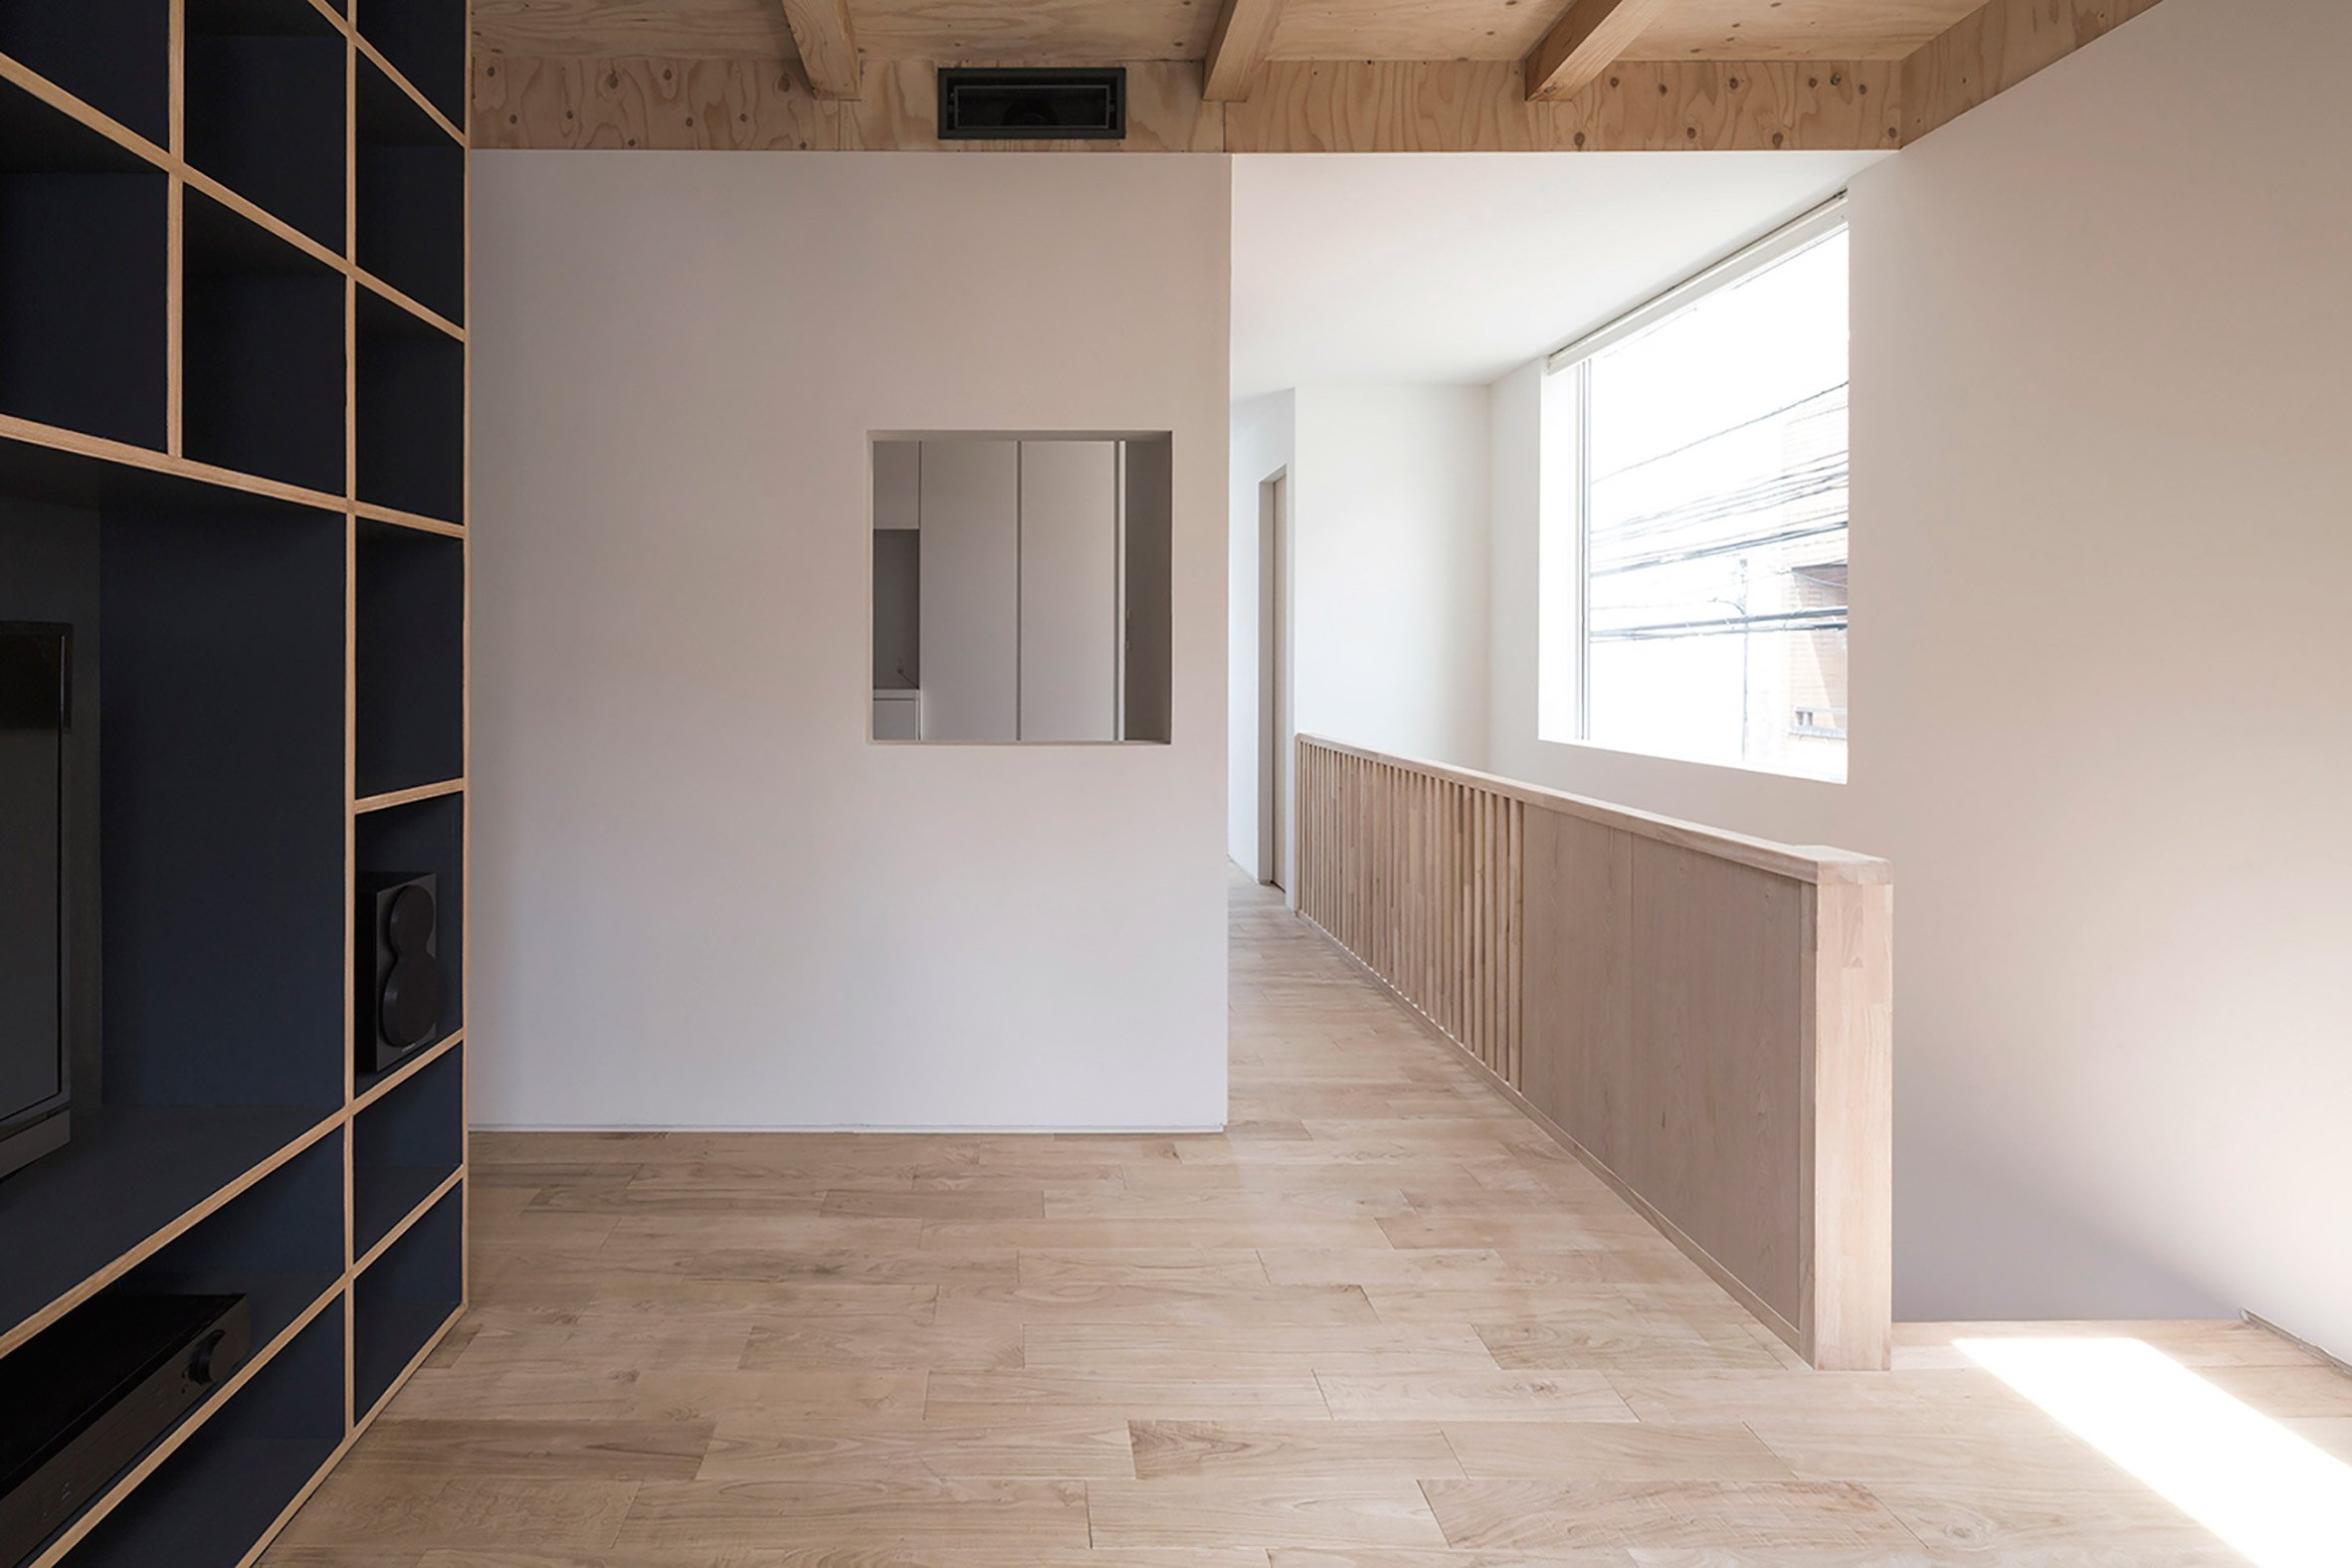 Uncategorized Cat Walkway In House graphic designers home and studio in tokyo includes cat walkway house is by do do